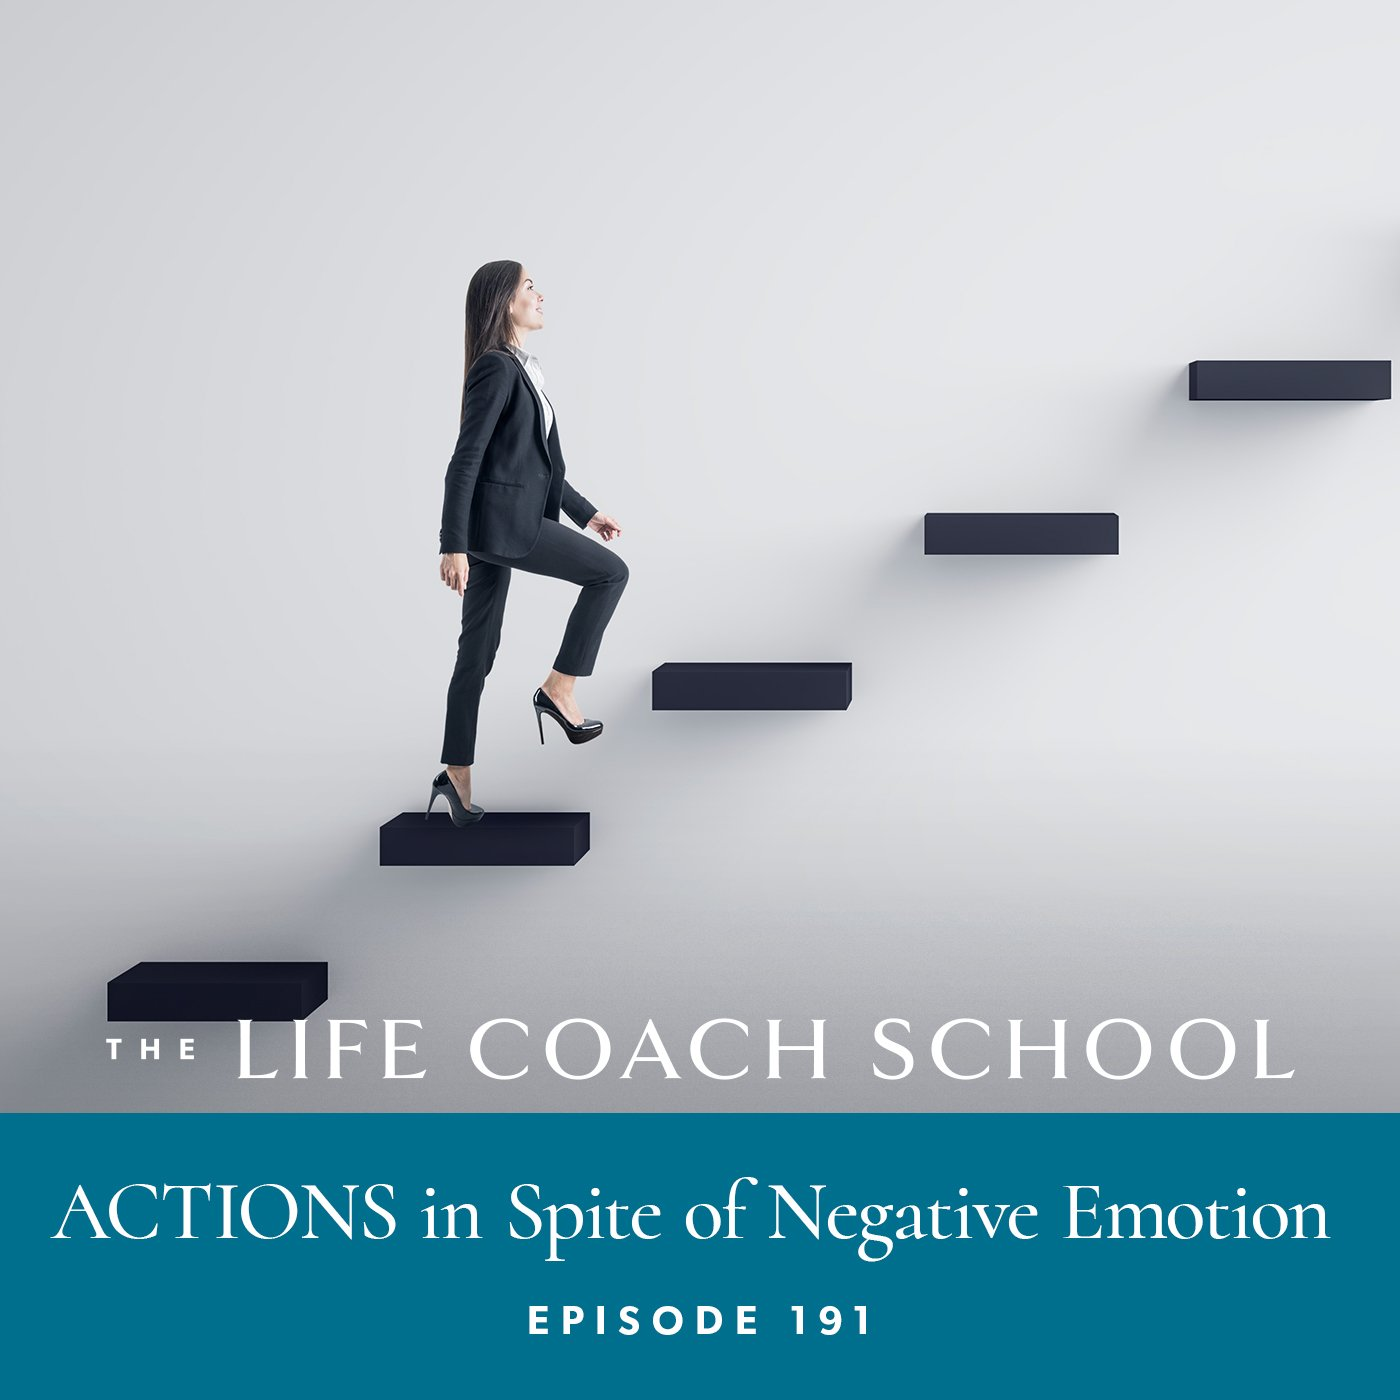 The Life Coach School Podcast with Brooke Castillo | Episode 191 | ACTIONS in Spite of Negative Emotion